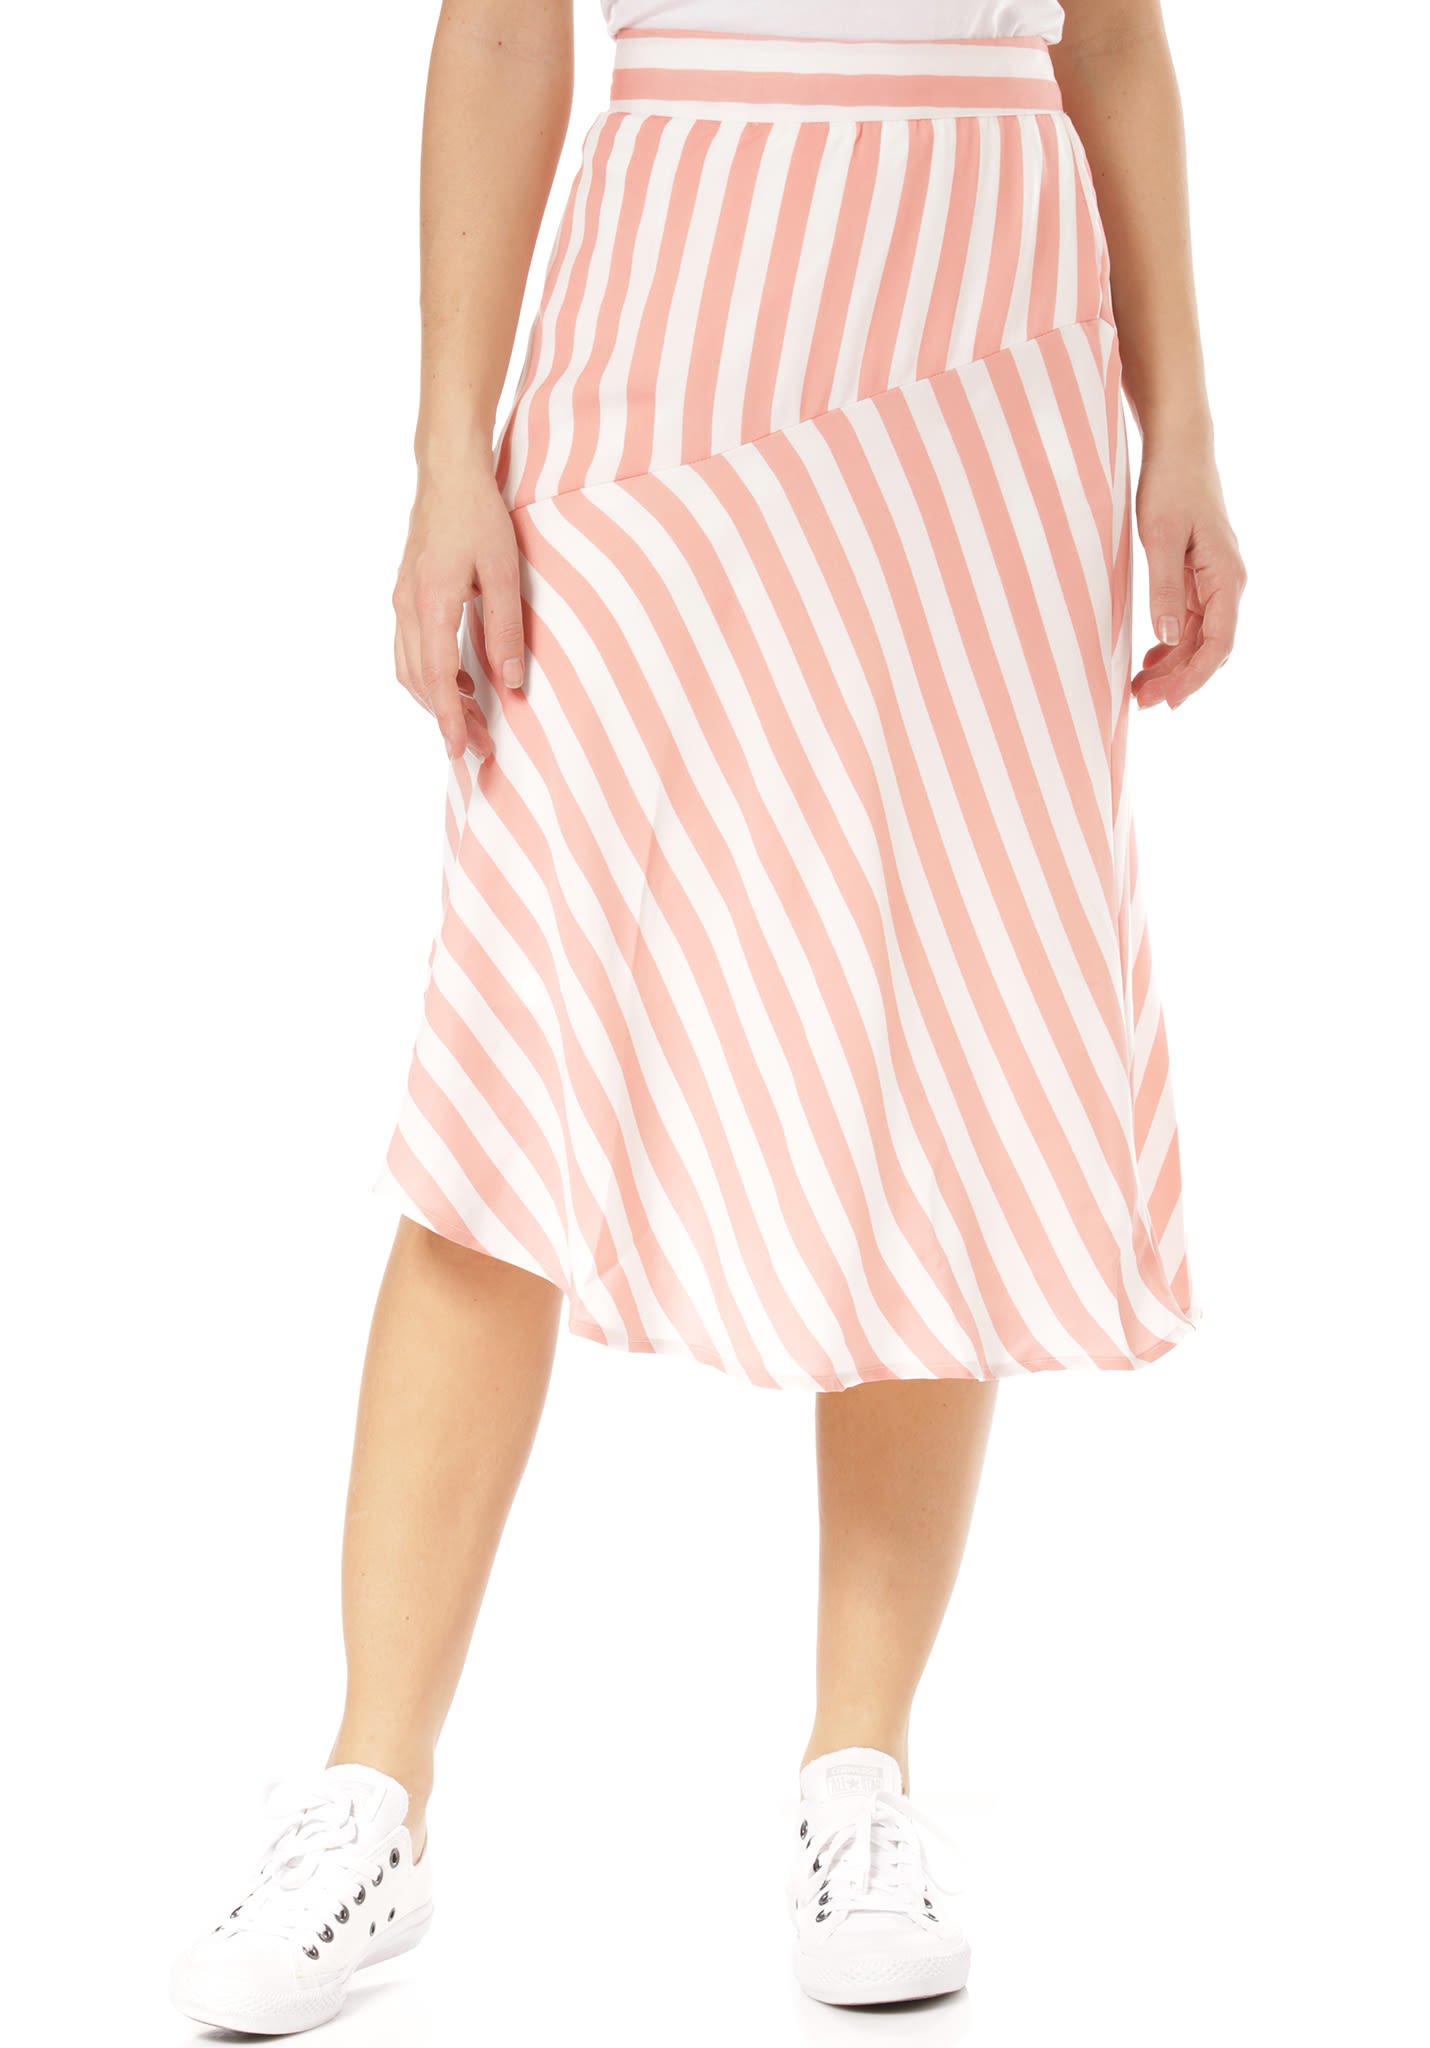 554206daed Vila Vistribello Midi - Skirt for Women - Pink - Planet Sports